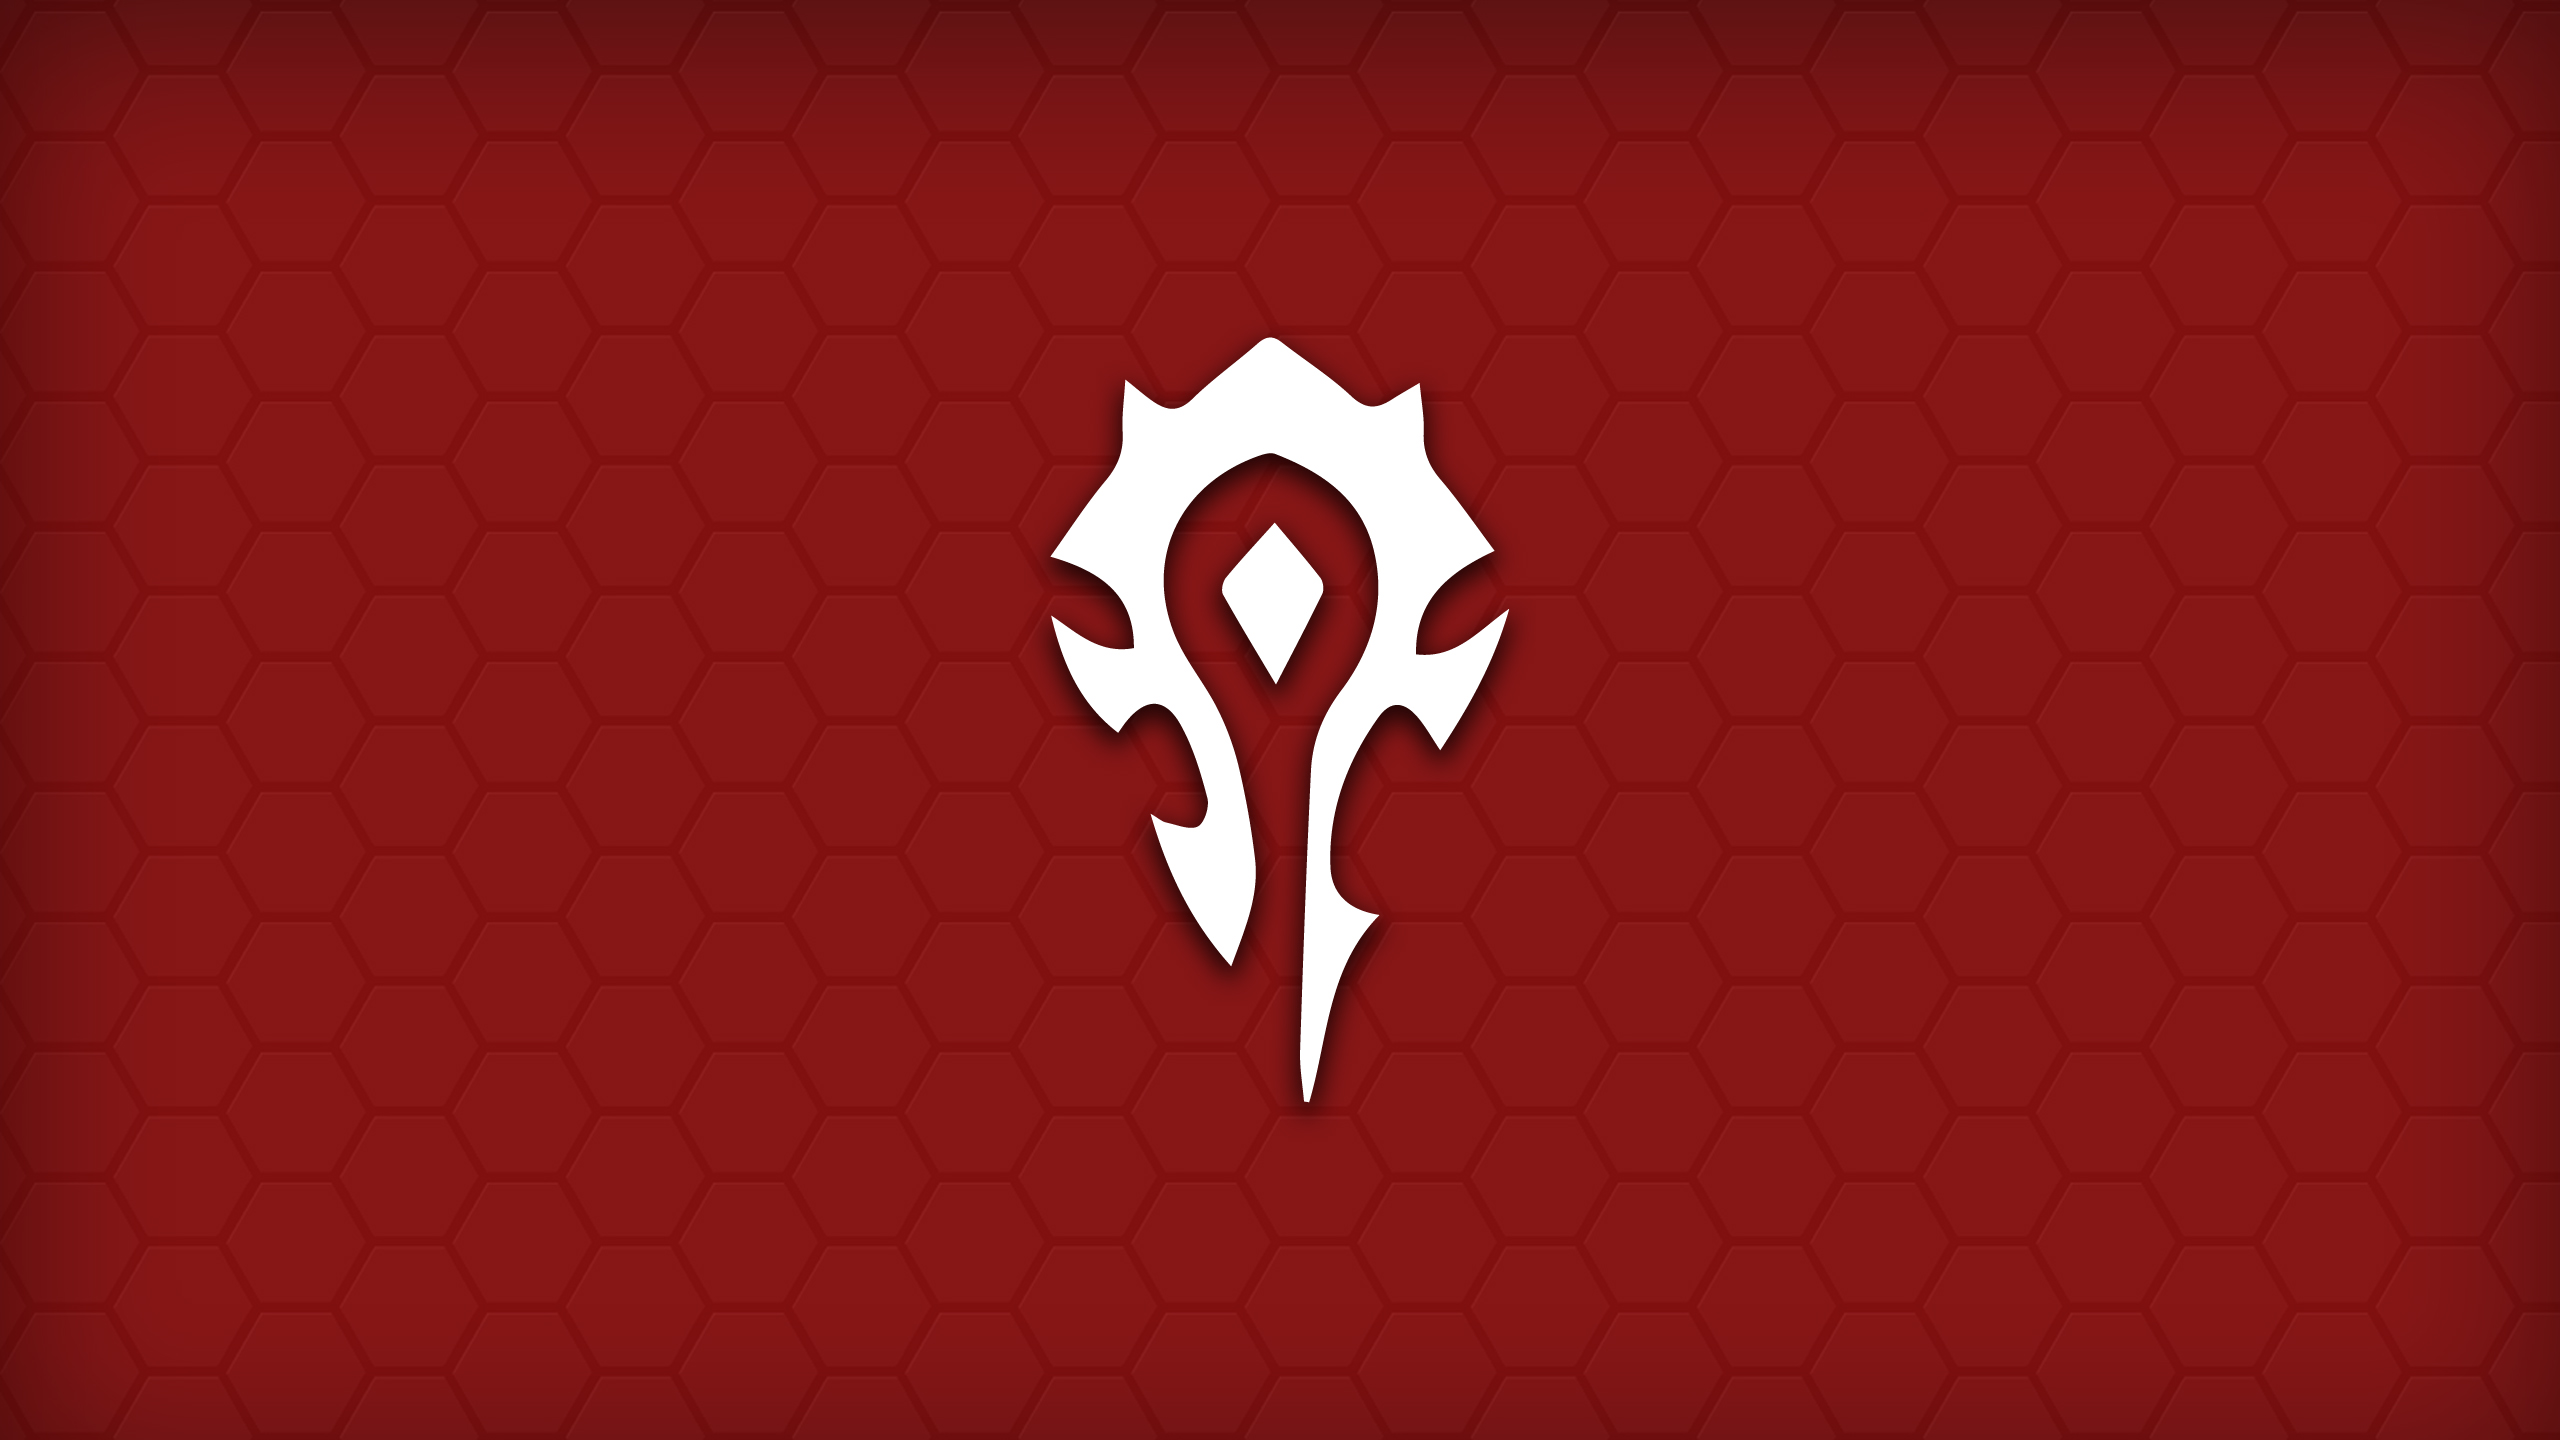 wow horde wallpaper 2560x1440 by harrymachin on deviantart